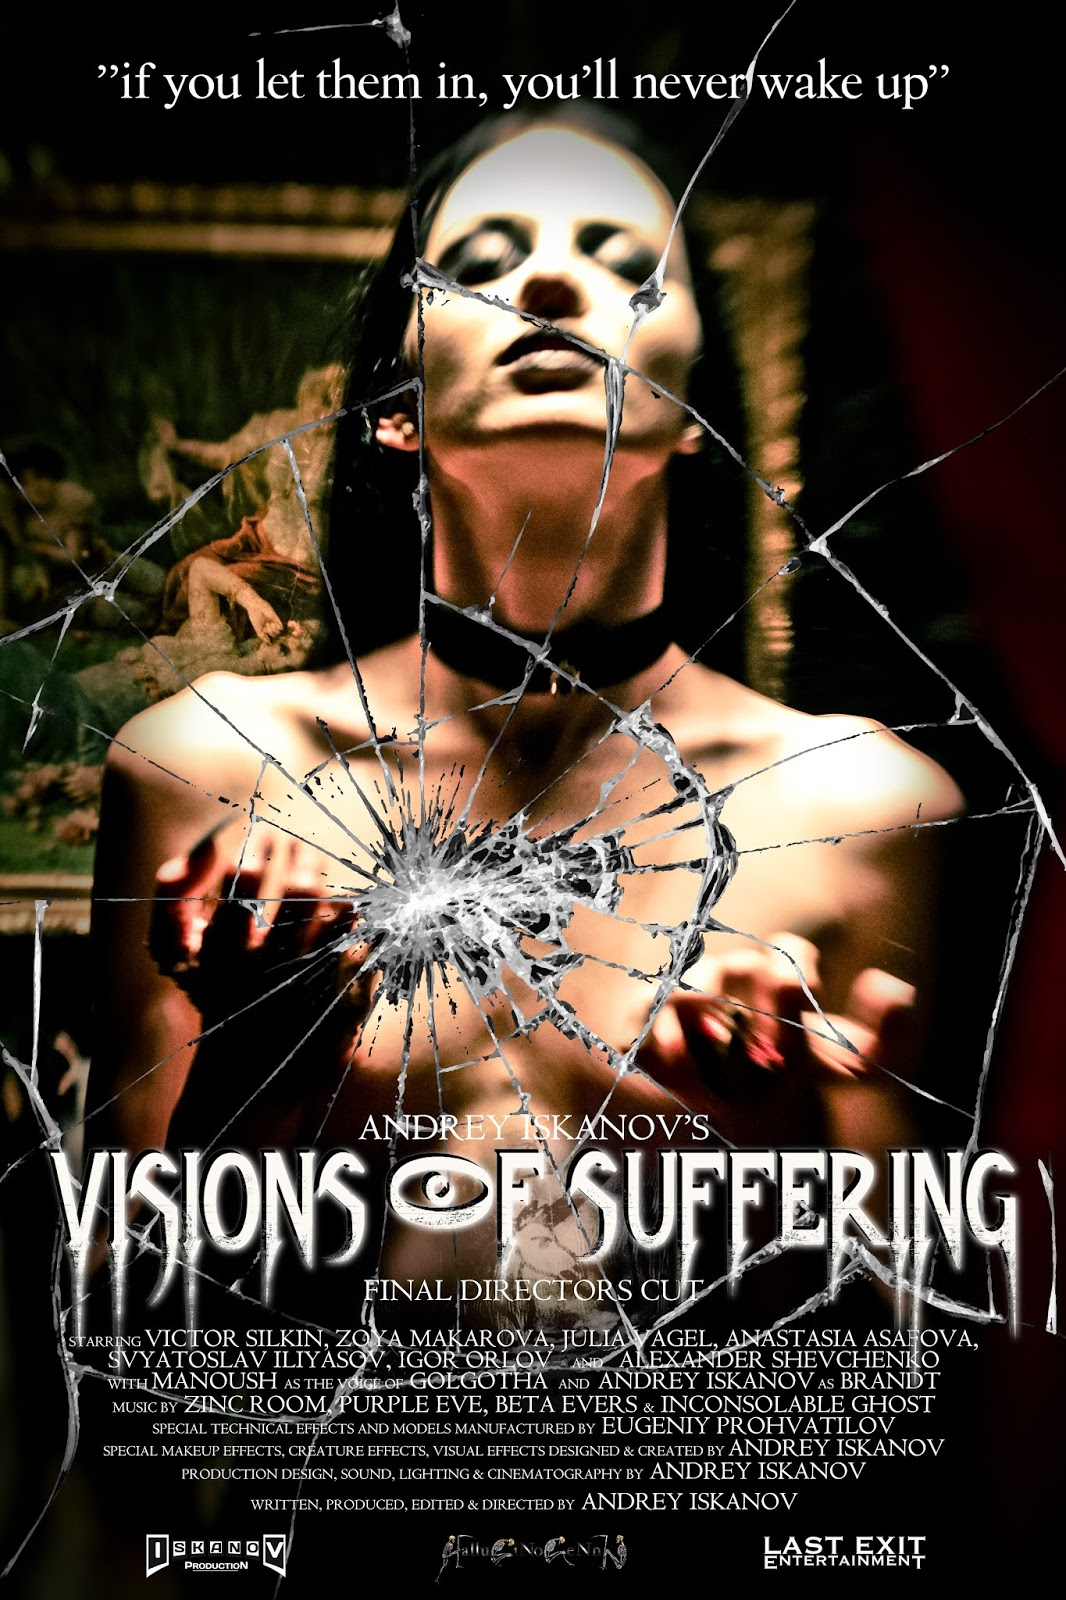 VISIONS OF SUFFERING (DVD)